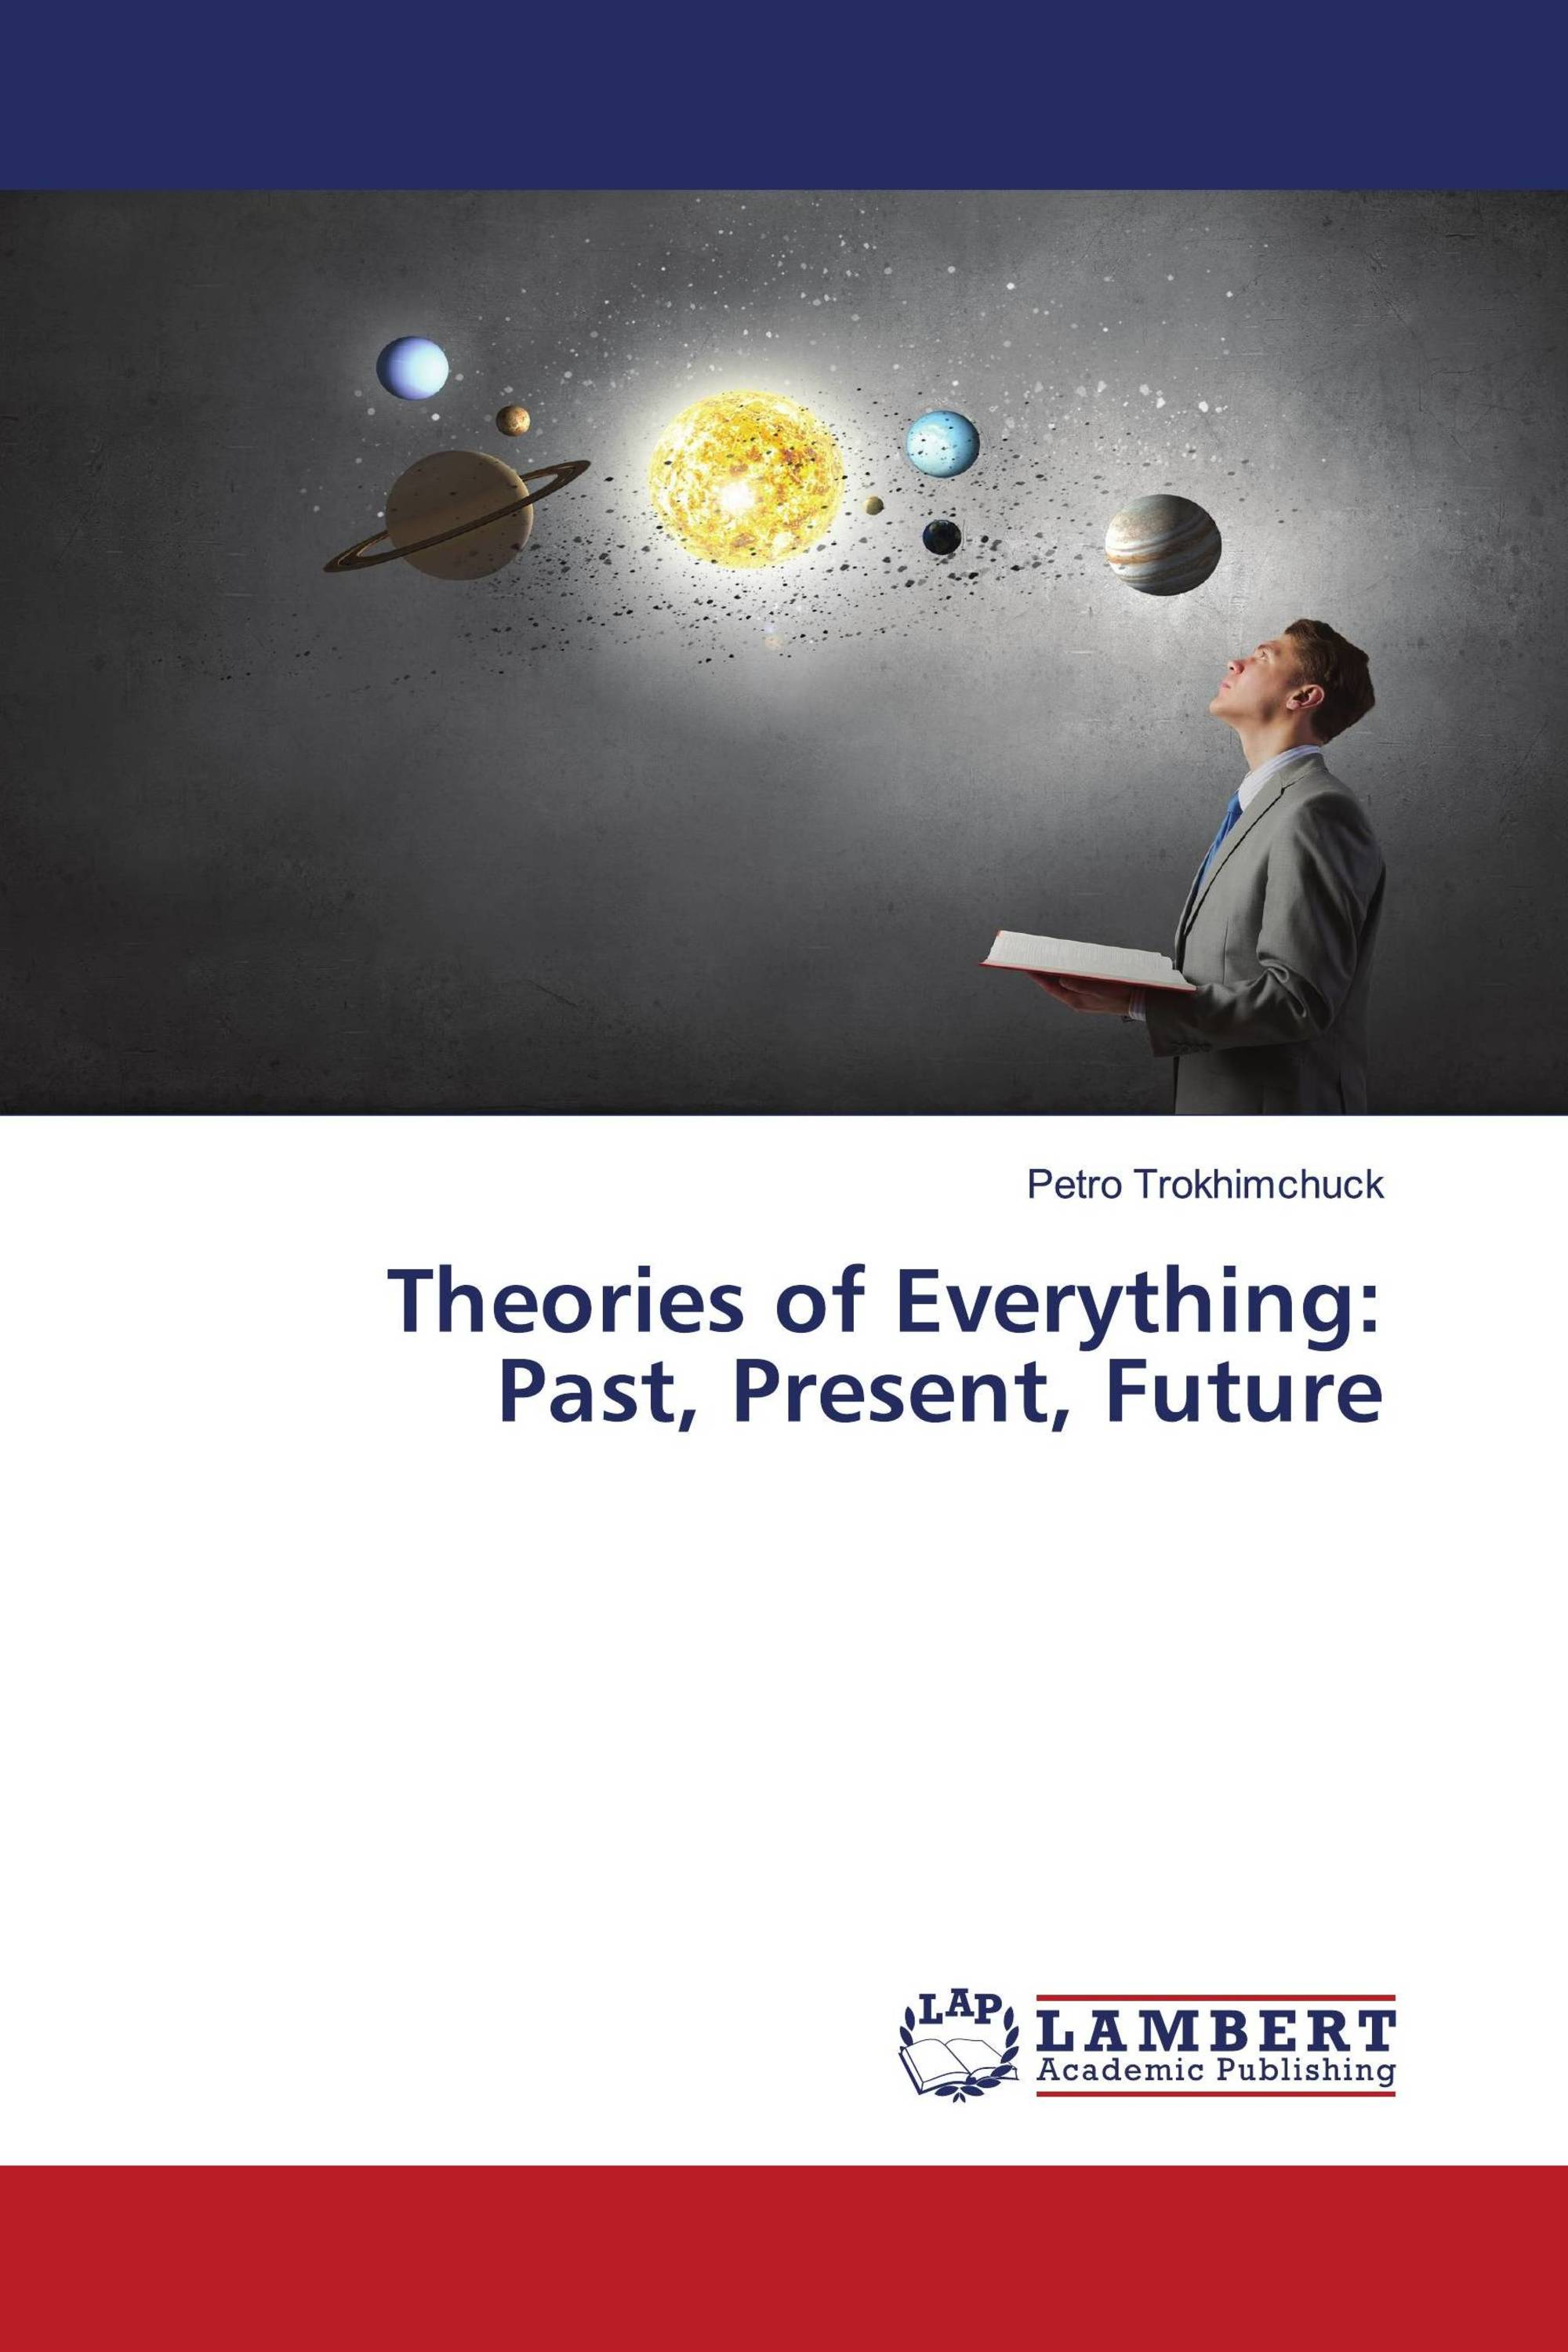 Theories of Everything:Past, Present, Future